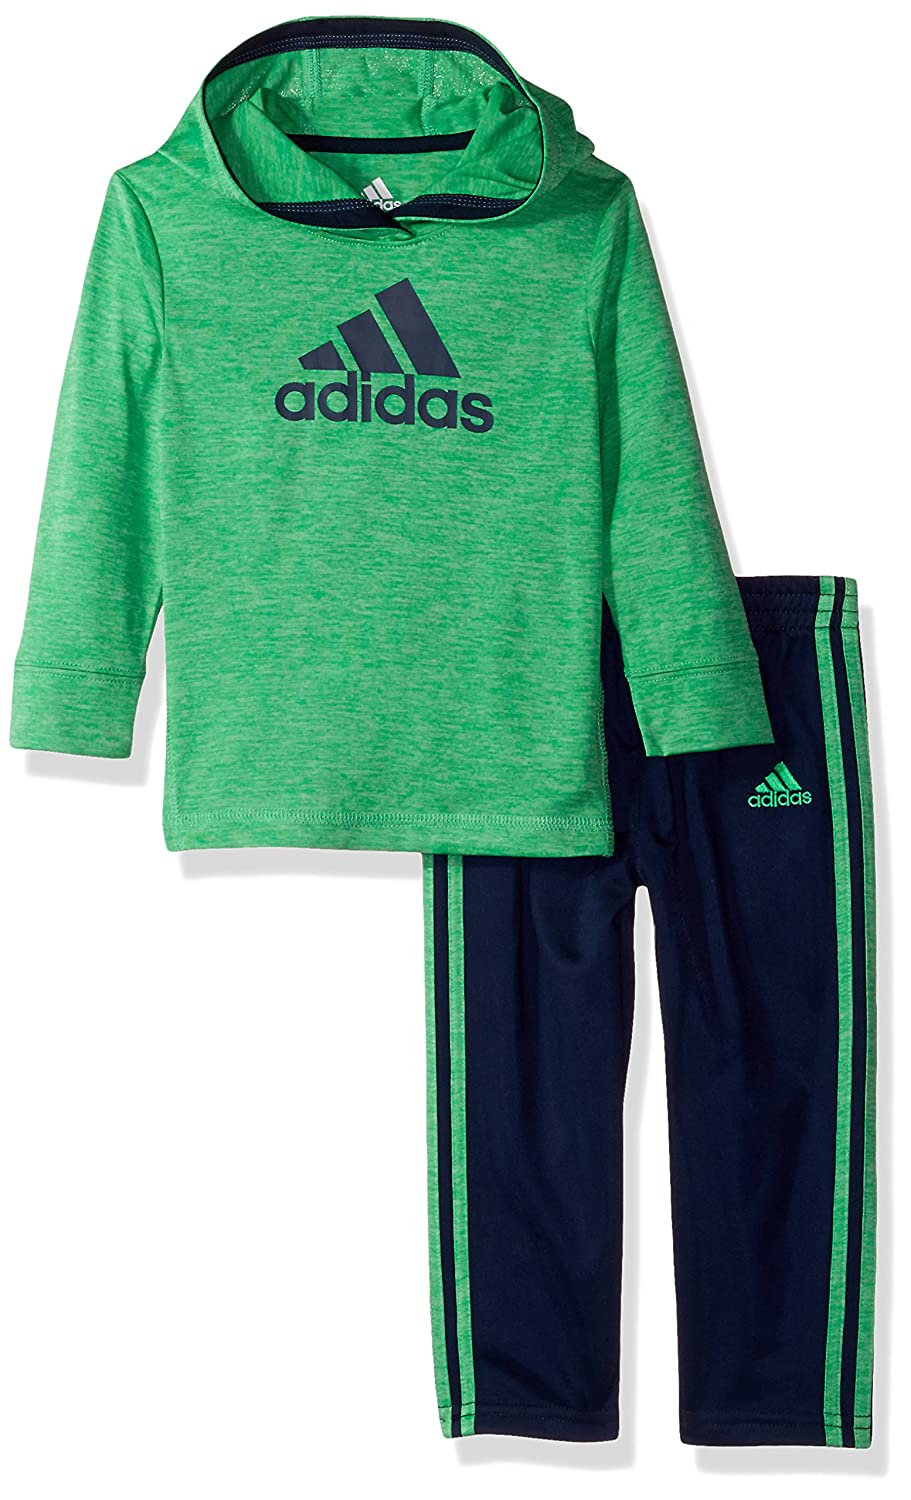 aac8fae2aad The coast to coast hoodie set has a pullover hooded melange top with  contrast Adidas brand mark at chest and contrast cover ...